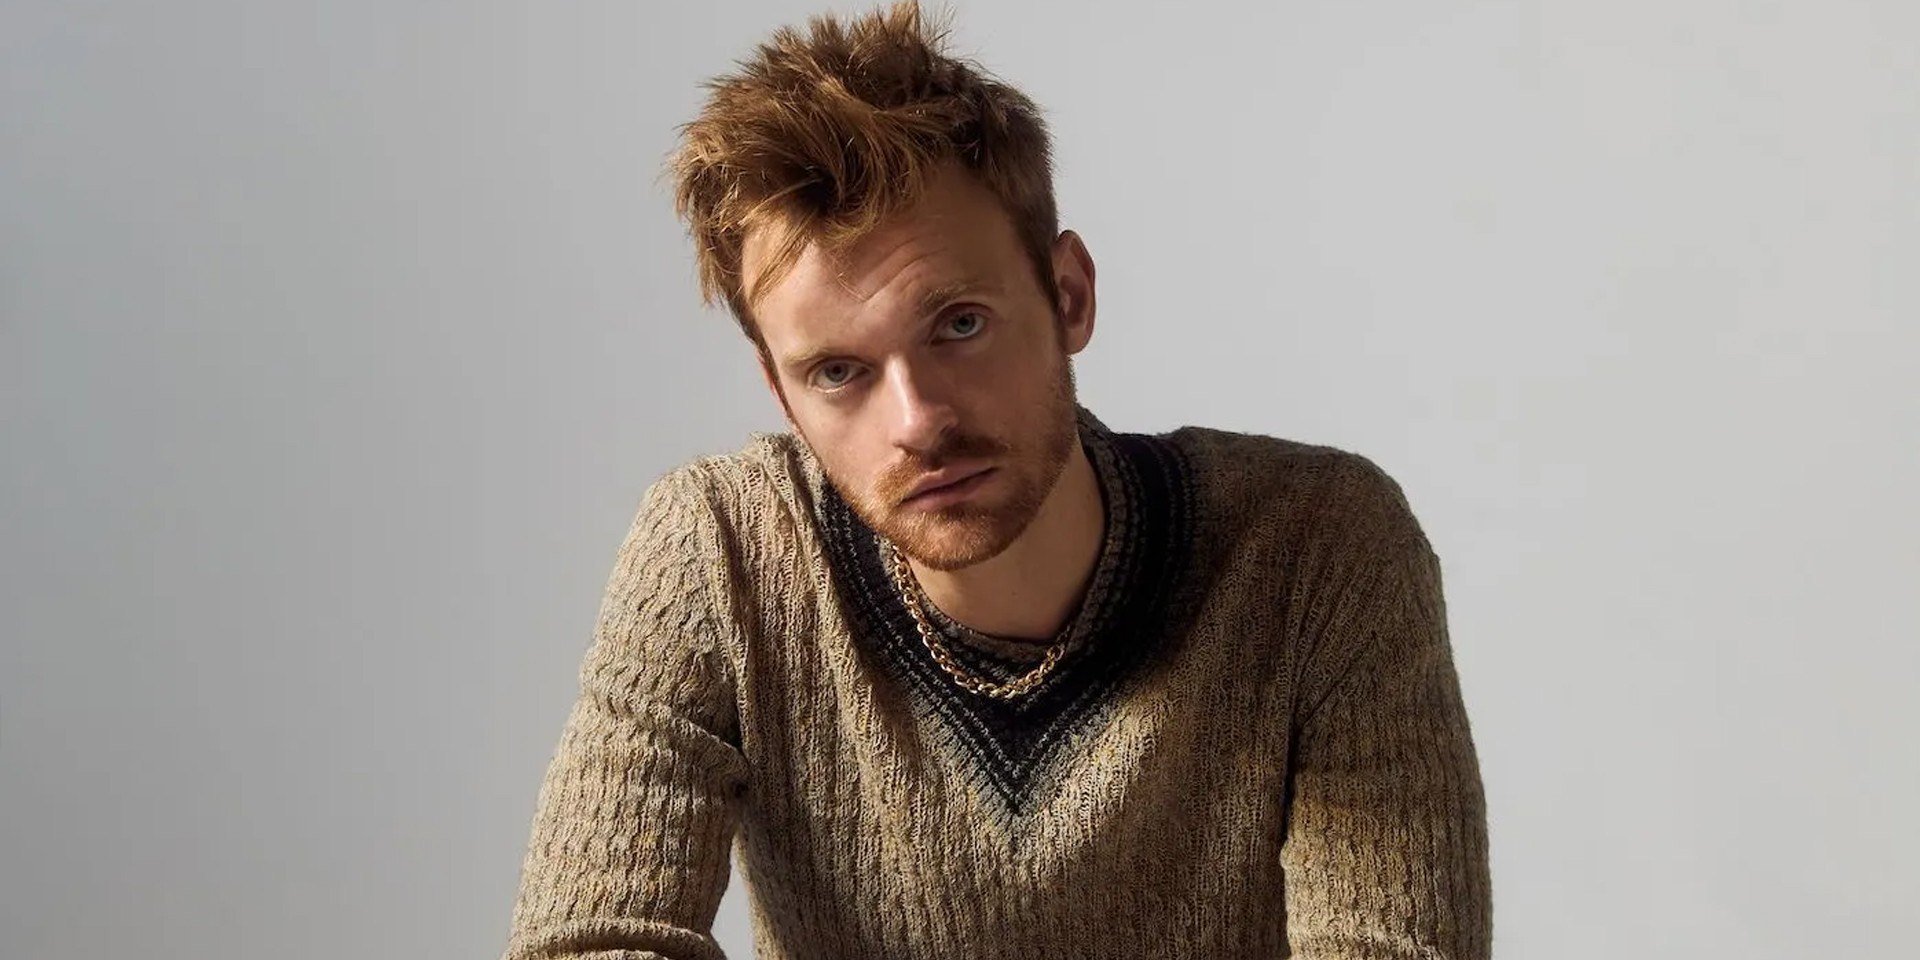 FINNEAS rules the Hollywood Bowl in 'A Concert Six Months From Now' music video from debut album 'Optimist' – watch